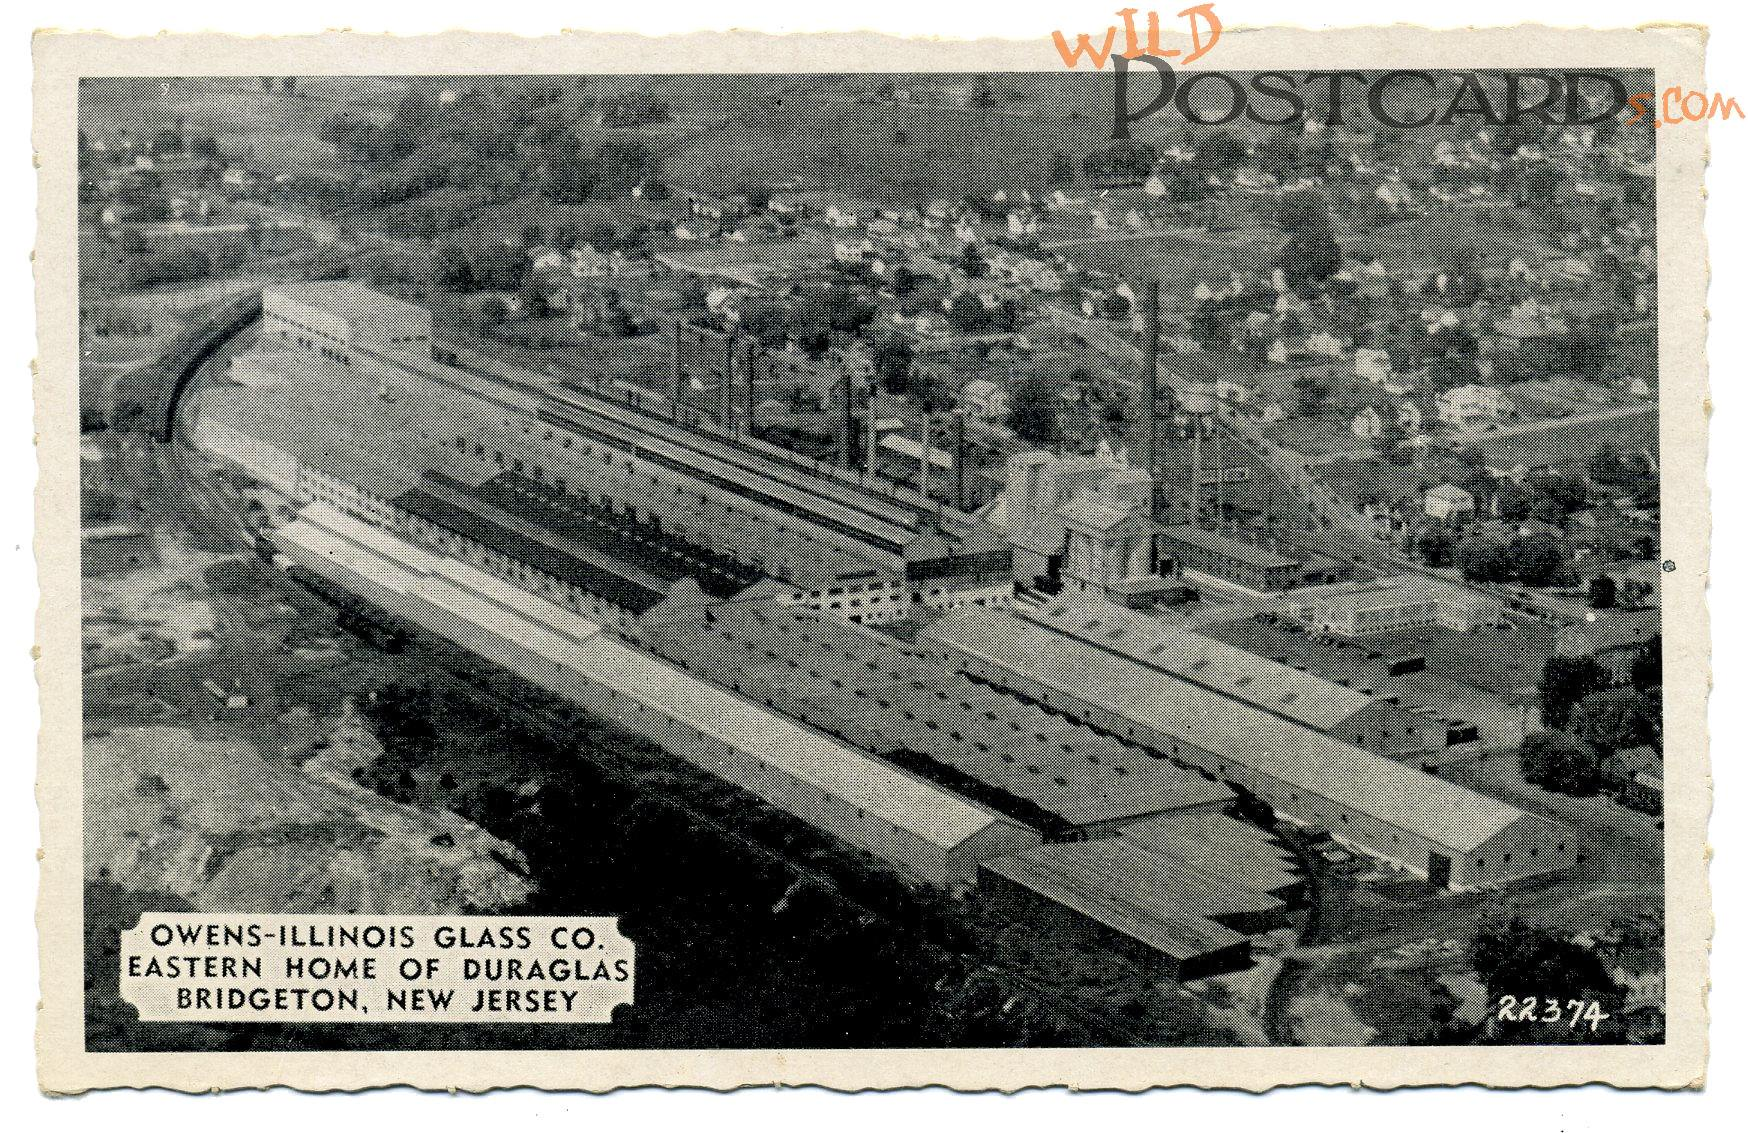 Owens-Illinois Glass Company Postcard at Wild Postcards - Postcard ...